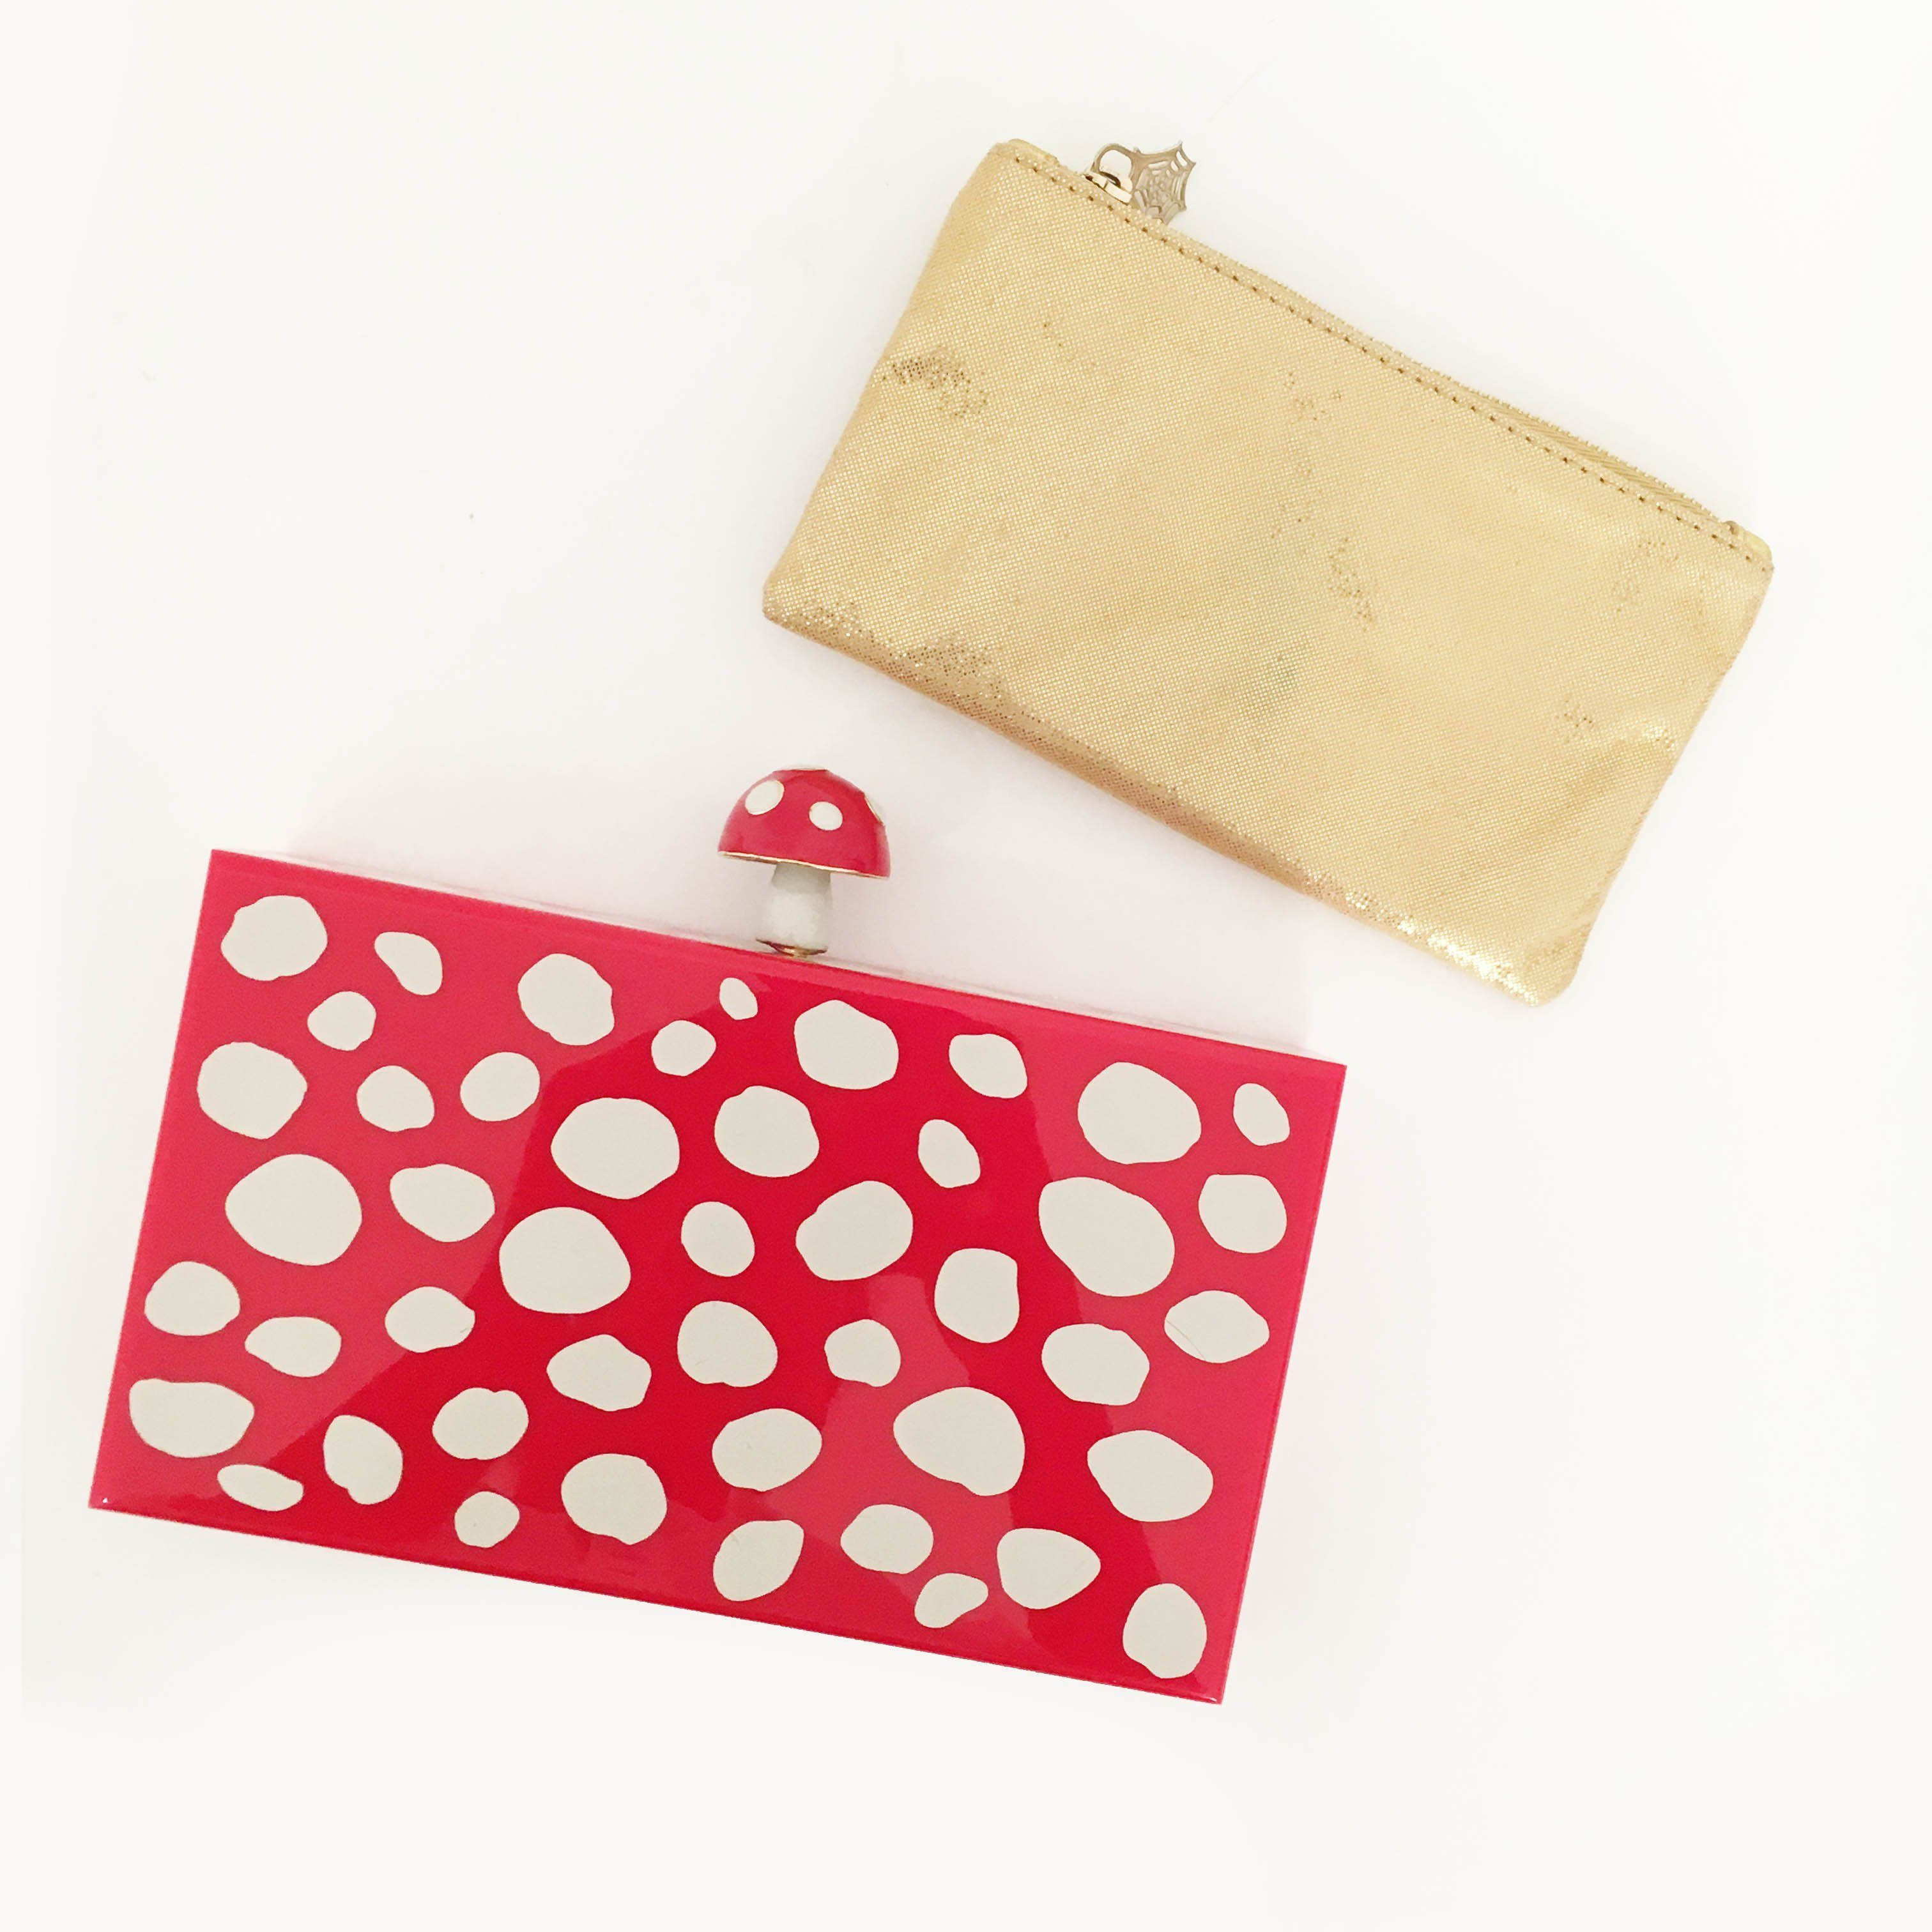 Charlotte Olympia Red Mushroom Pandora Perspex Box Clutch